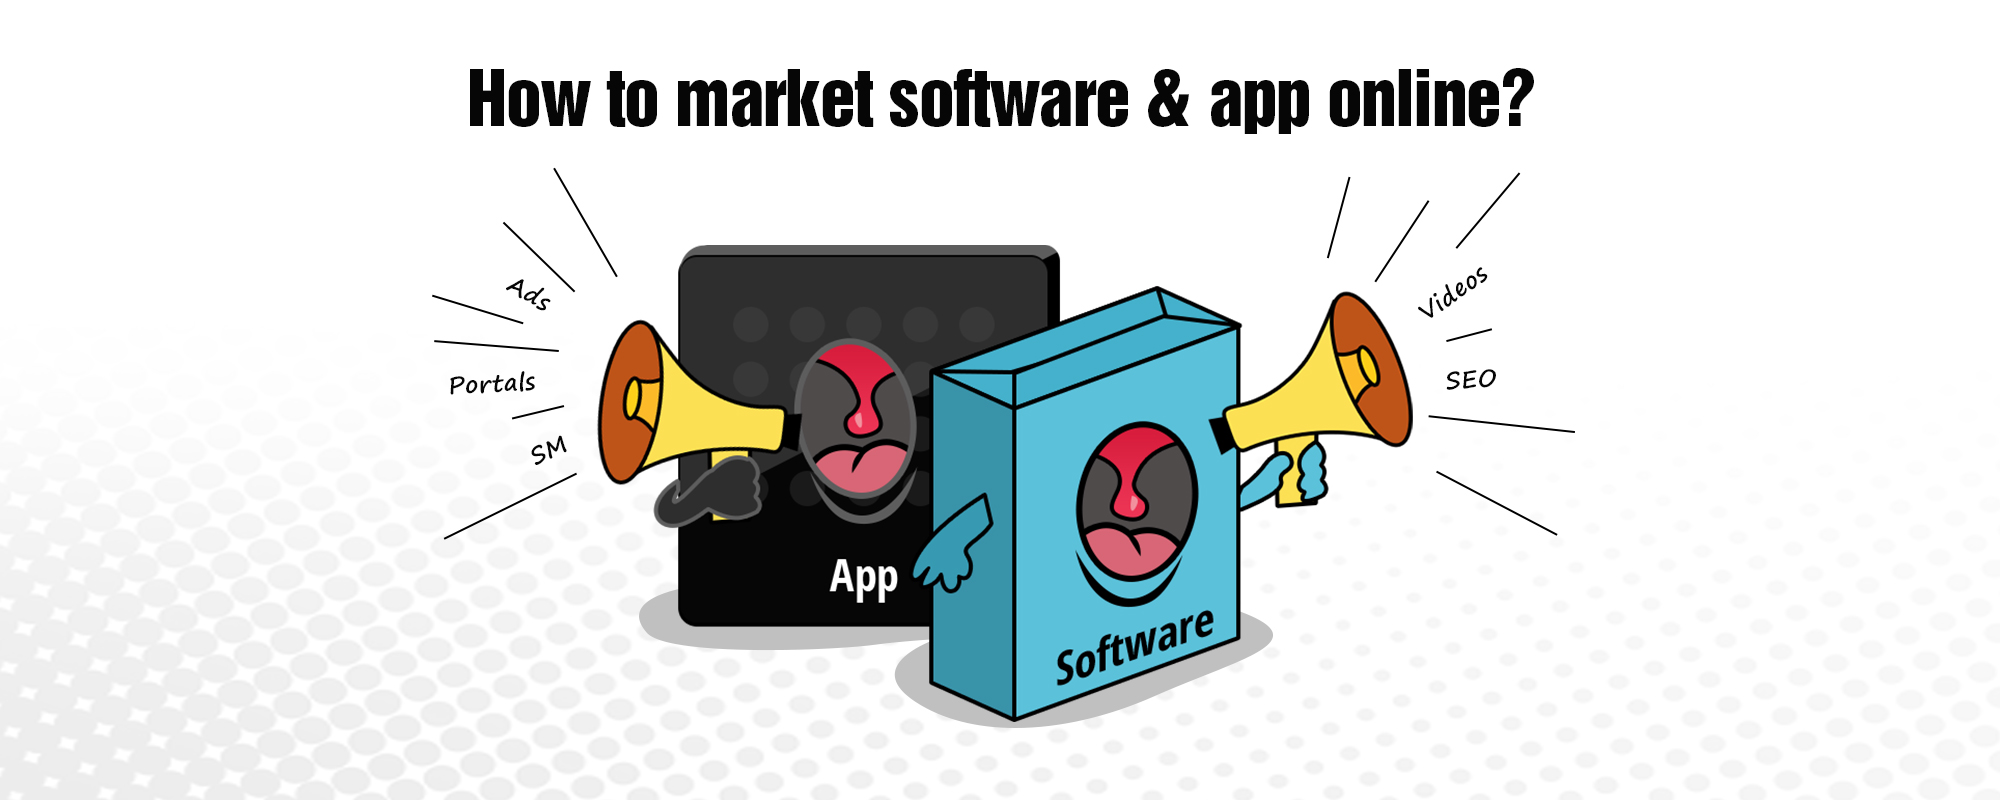 How to Promote Your Software & App Online?